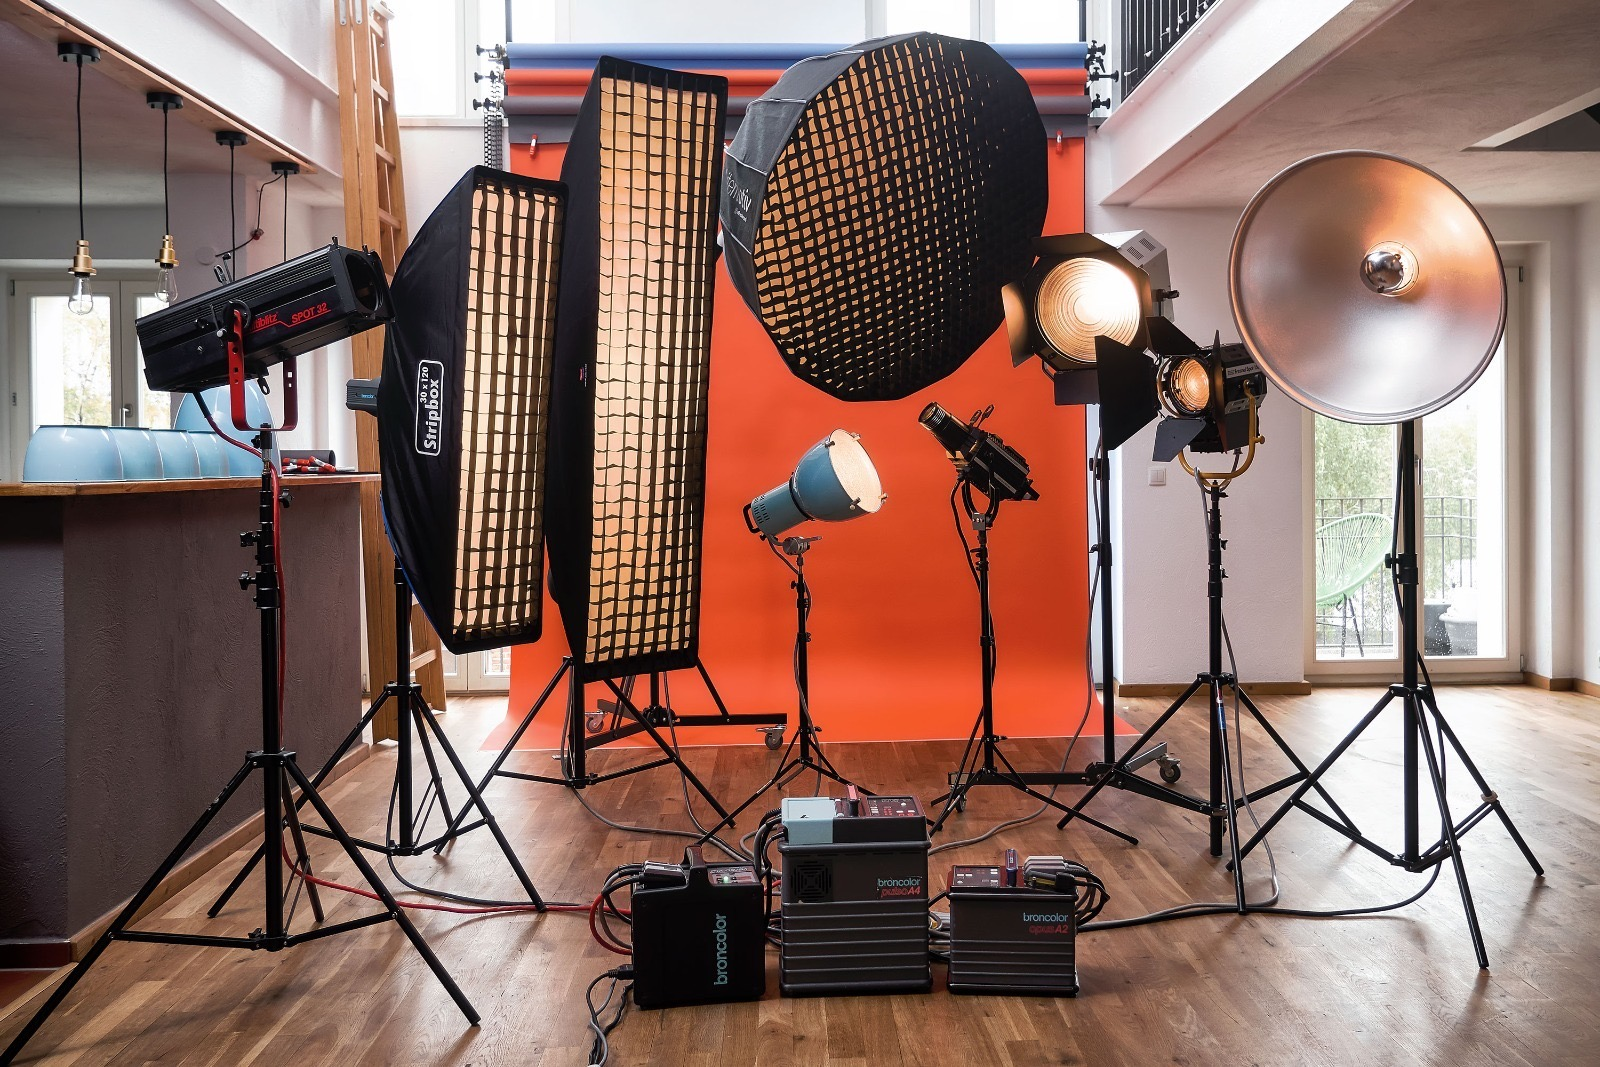 The Beazy events are hosted all over Germany for photographers, filmmakers and models. Beazy is a rental platform supporting creativity. On Beazy you can rent studios and equipment from other local photographers and filmmakers